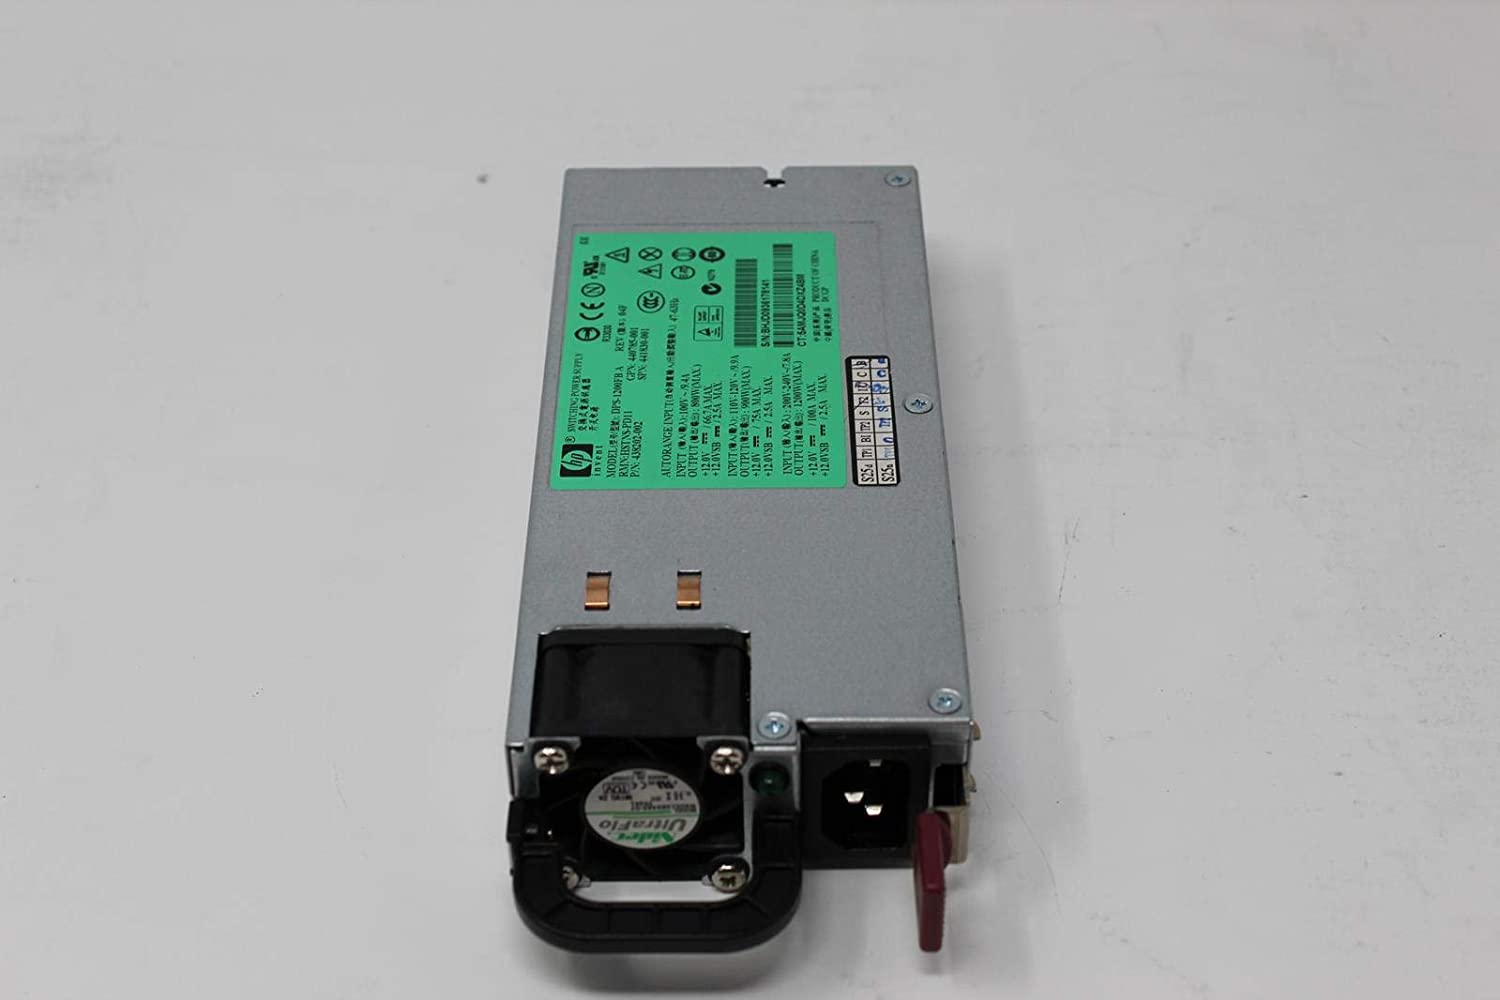 441830-001 - HP 1200W Power Supply for Proliant DL580 G5.